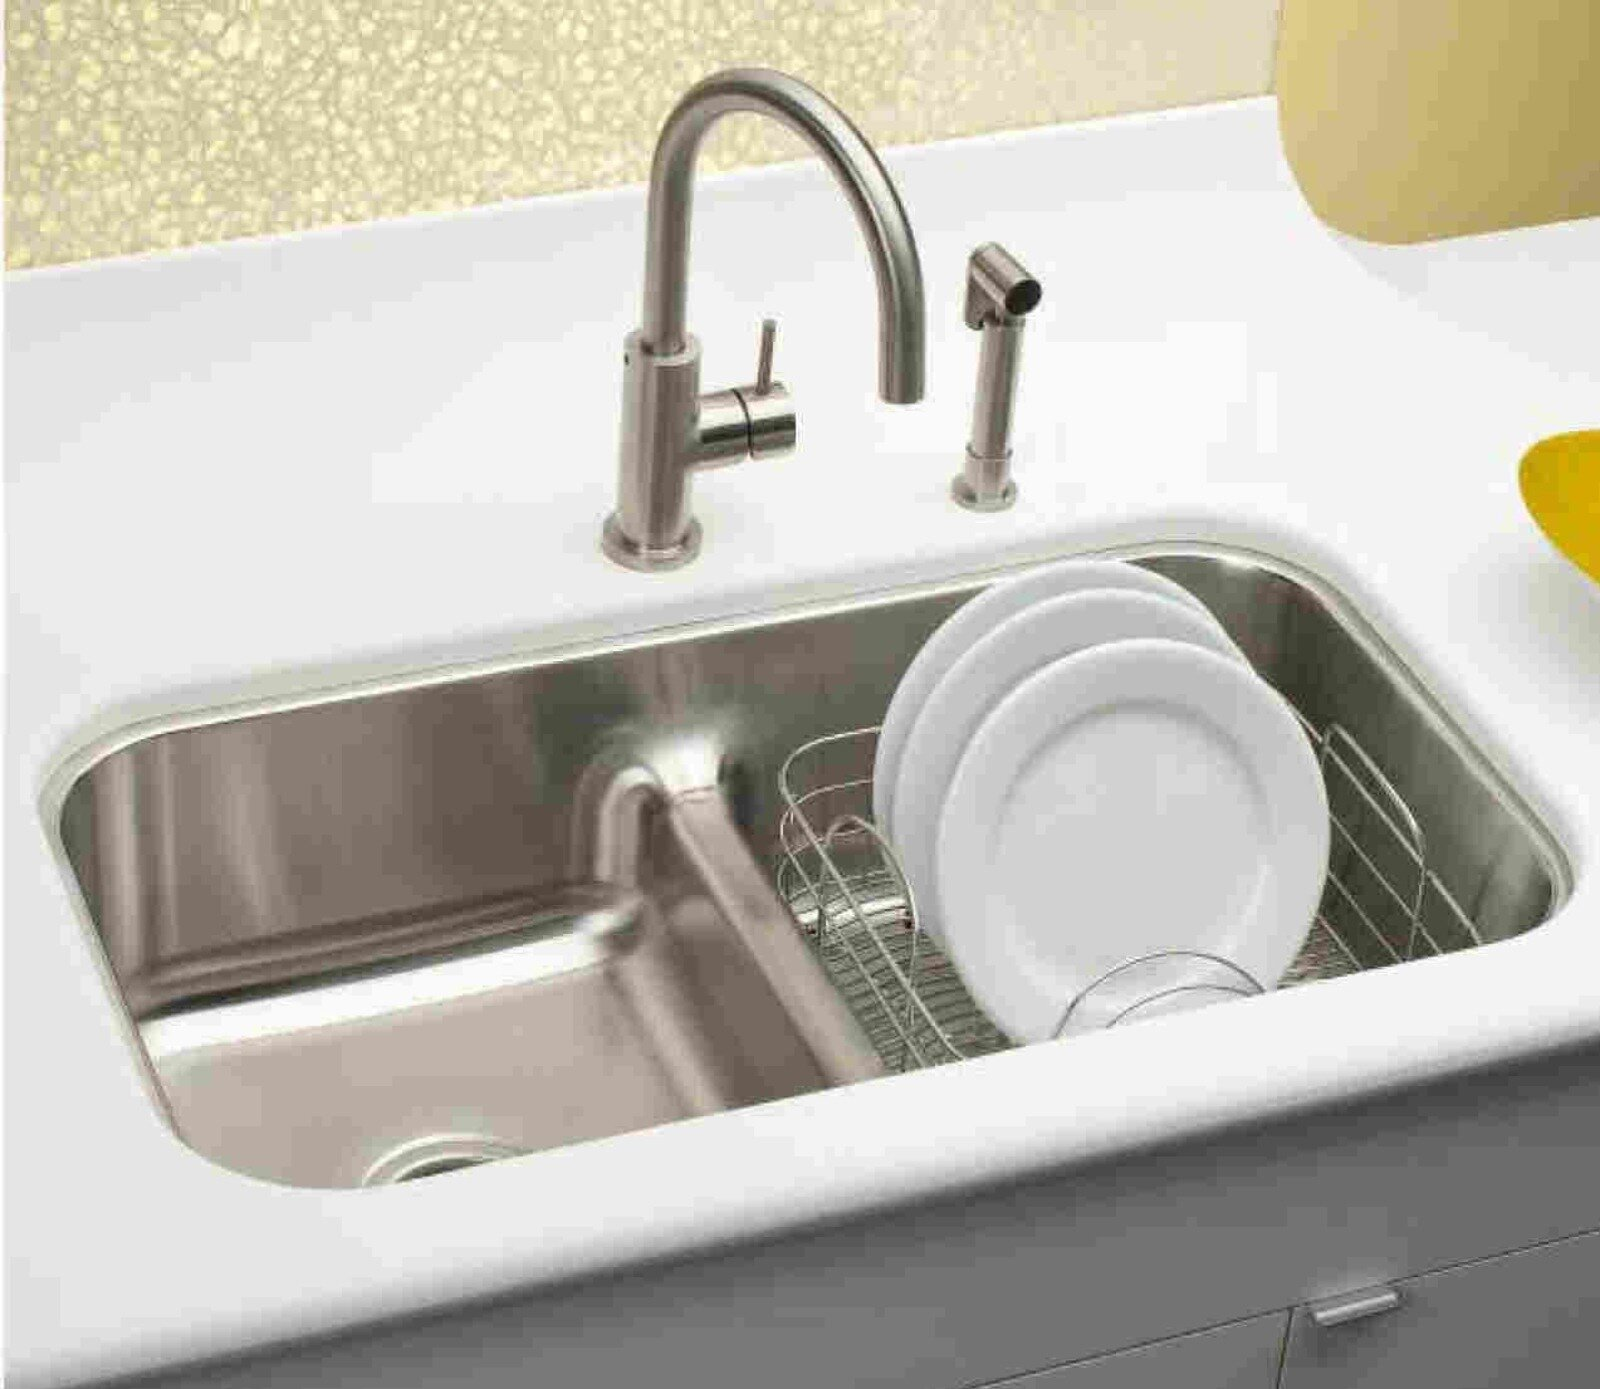 Stainless Steel Kitchen Sink Unit | Kitchen Sinks Stainless Steel | Farmhouse Stainless Steel Kitchen Sink